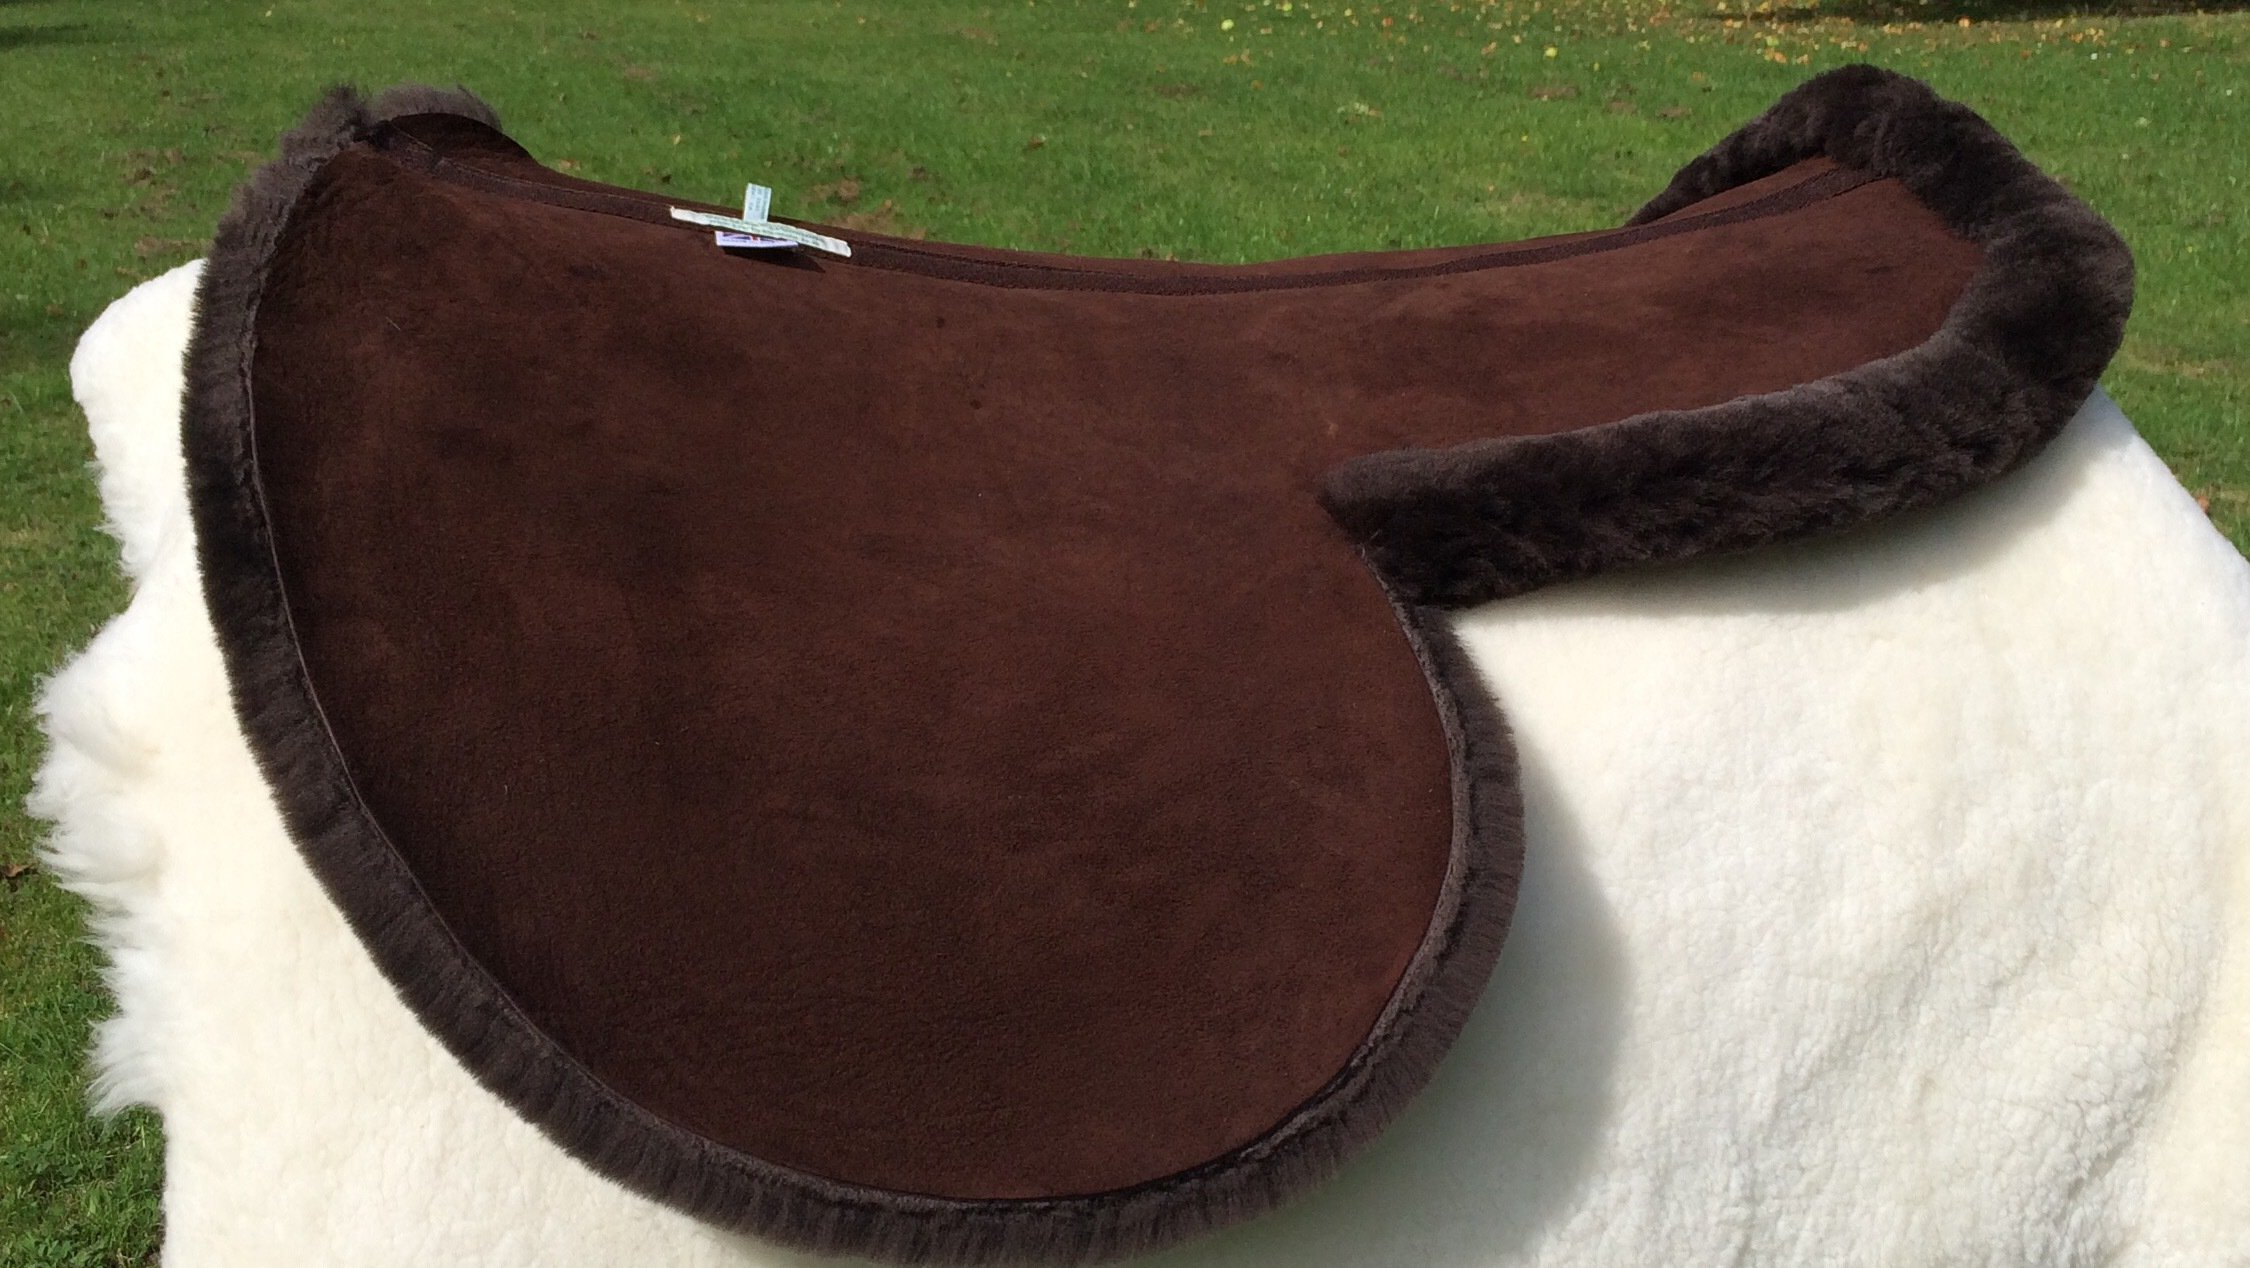 Dark Brown Side Saddle Numnah with Turned Edge around Seat only